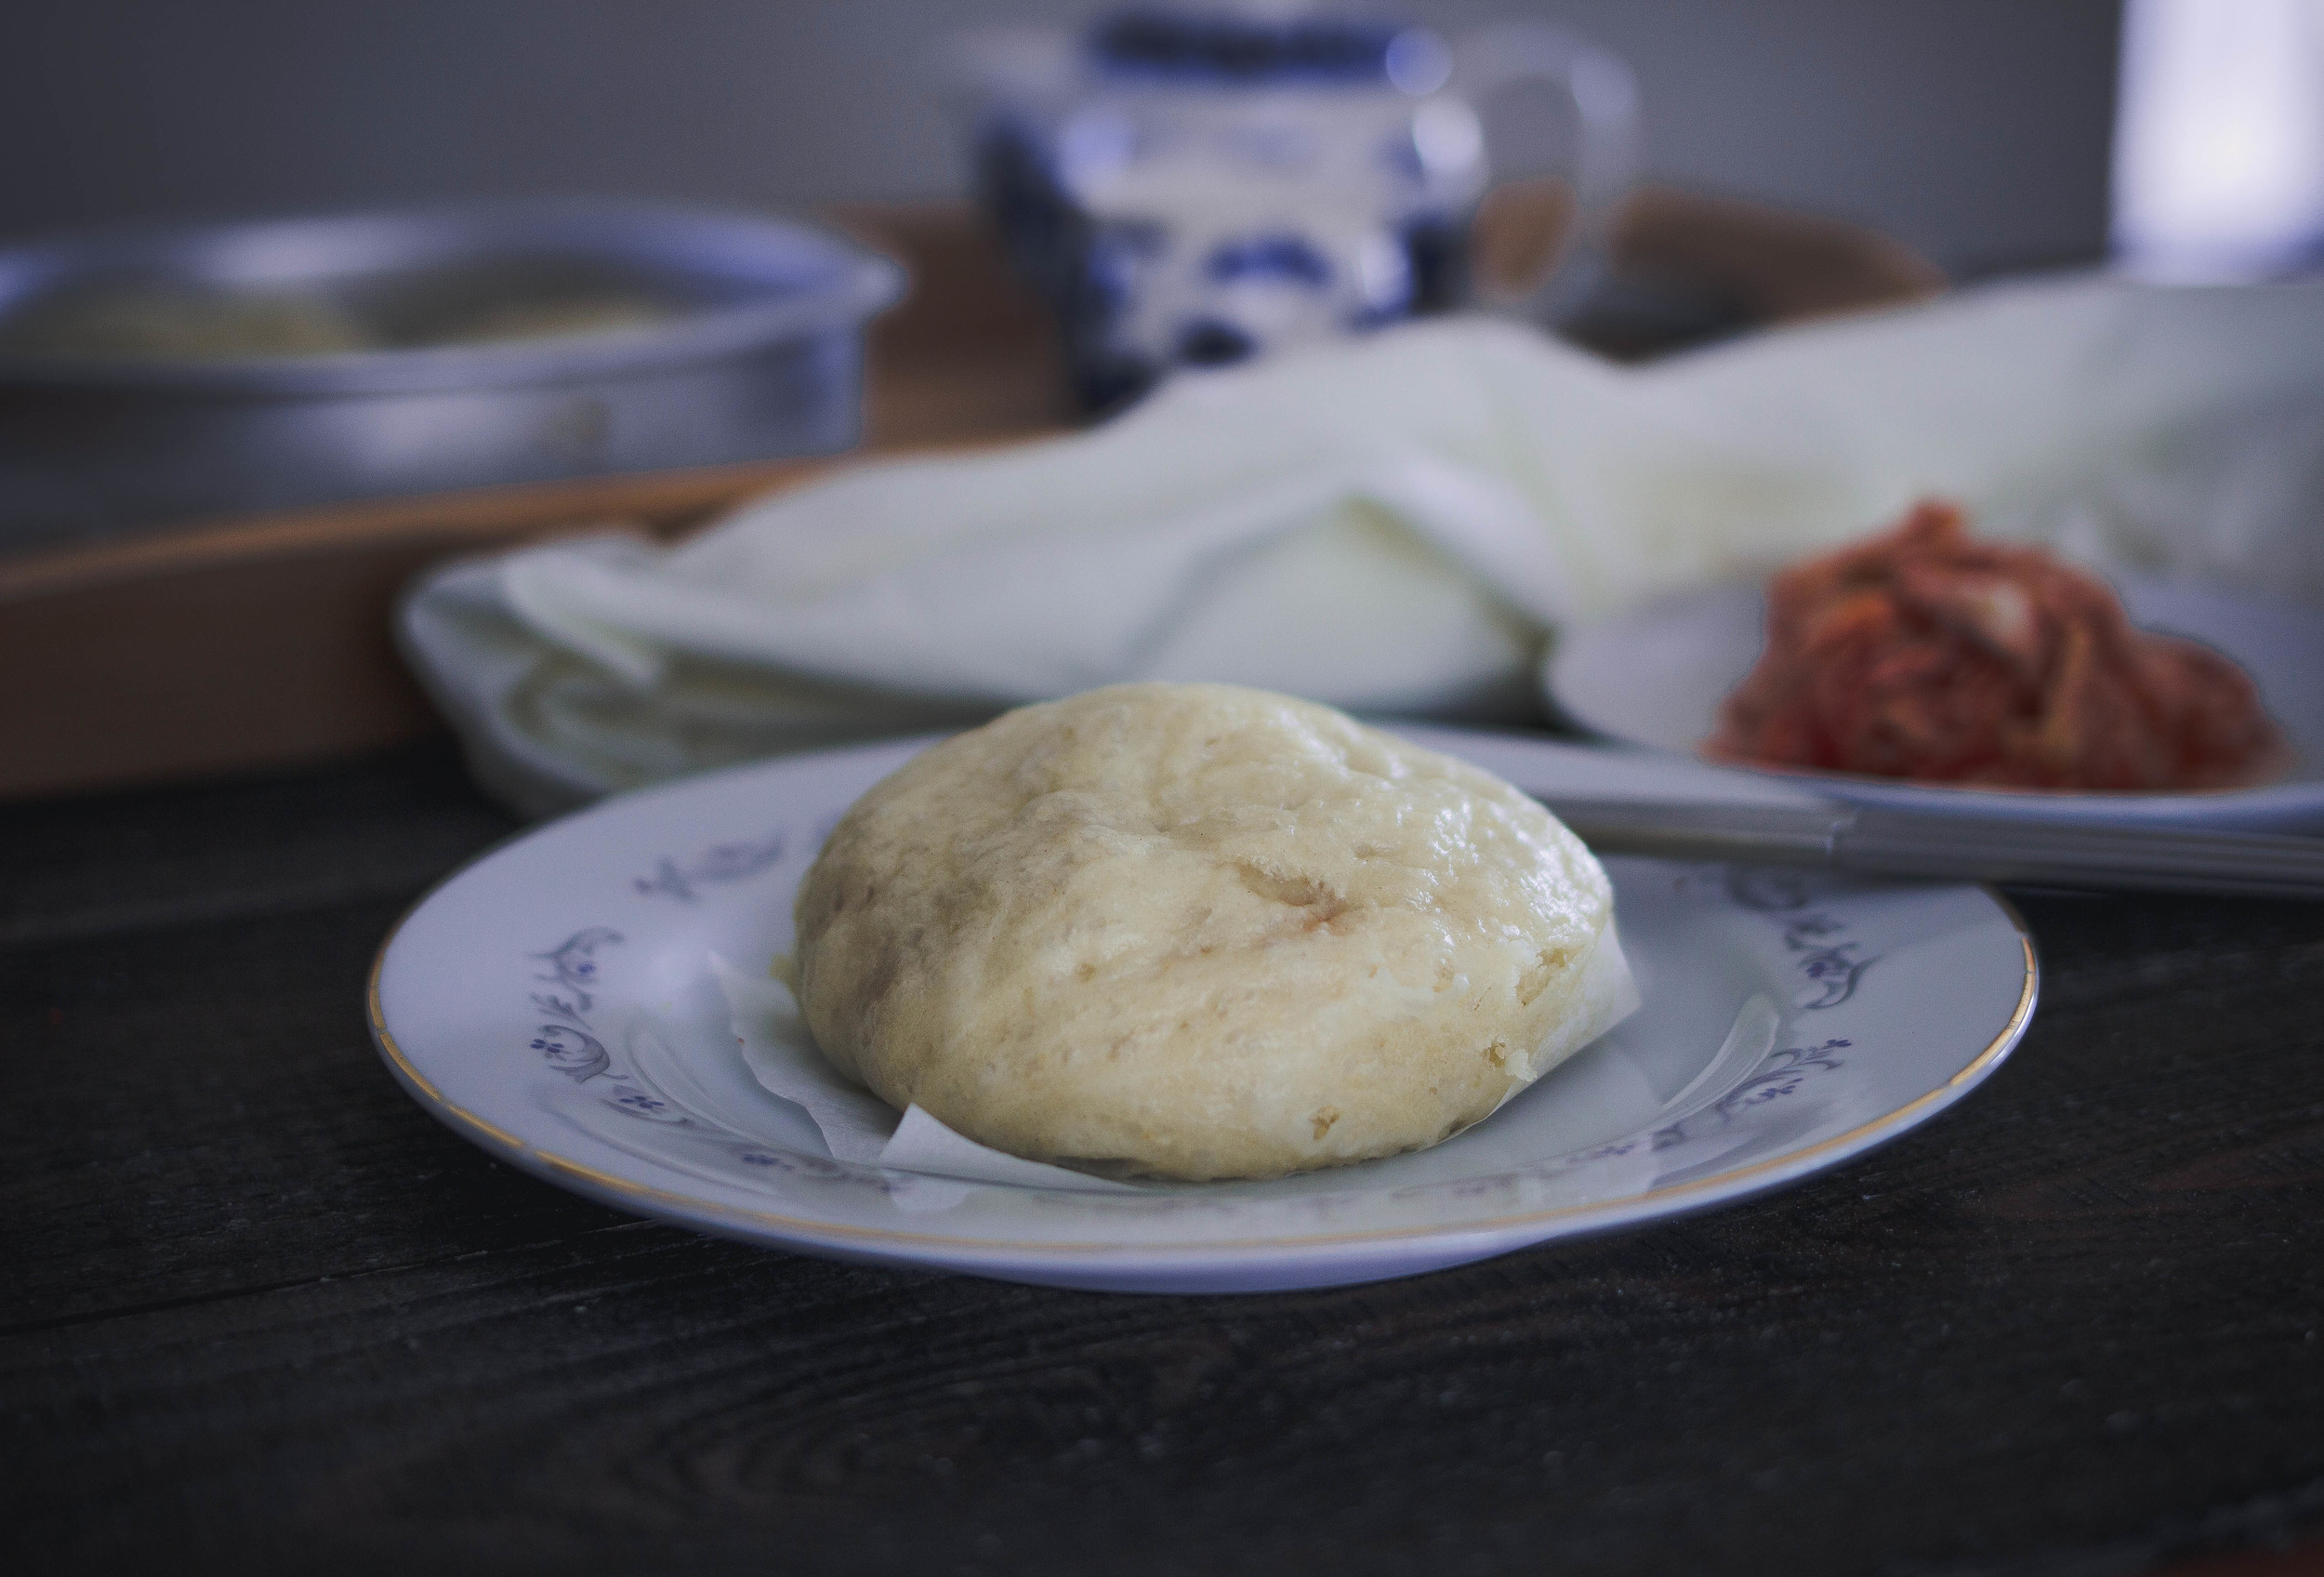 Easy Jjinbbang recipe with pork and kimchi filling   by fit for the soul